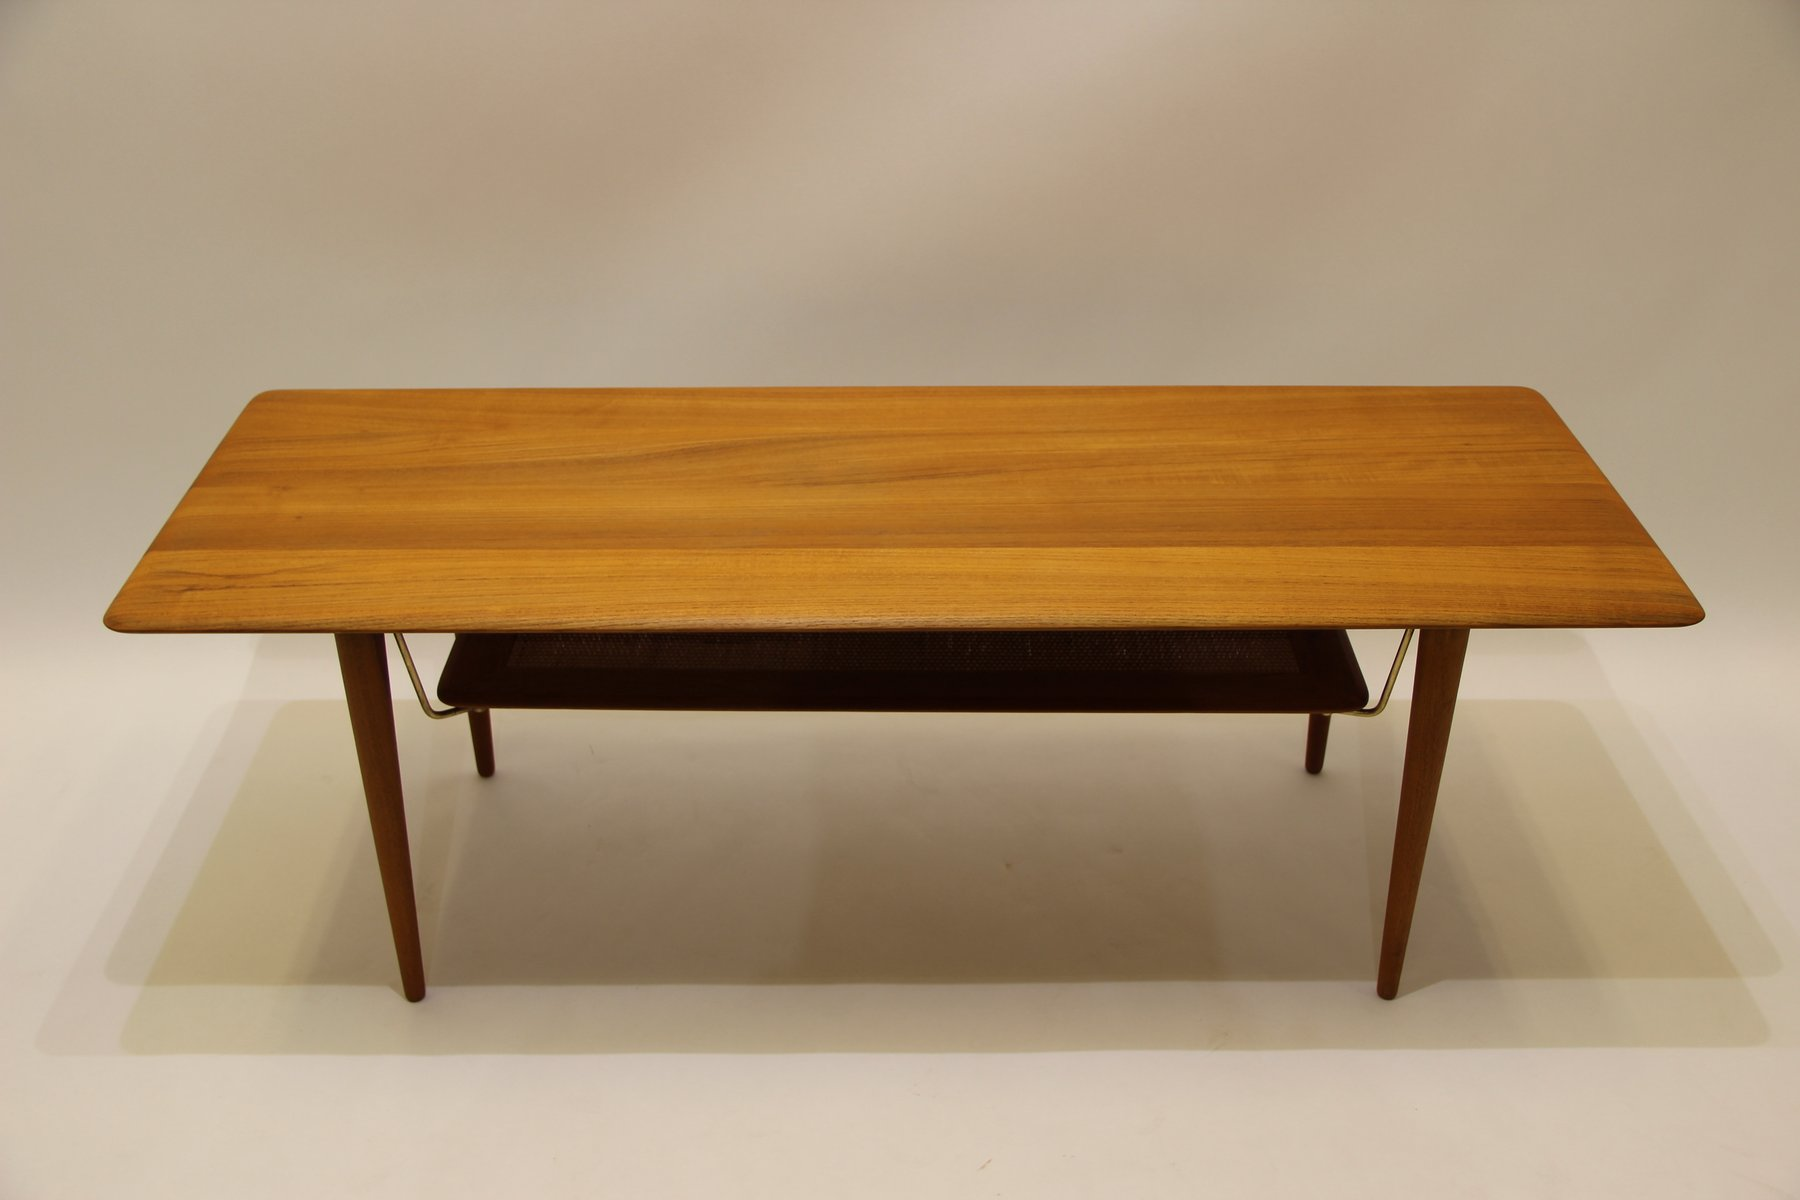 Vintage FD516 Coffee Table in Teak by Peter Hvidt & Orla M¸lgaard